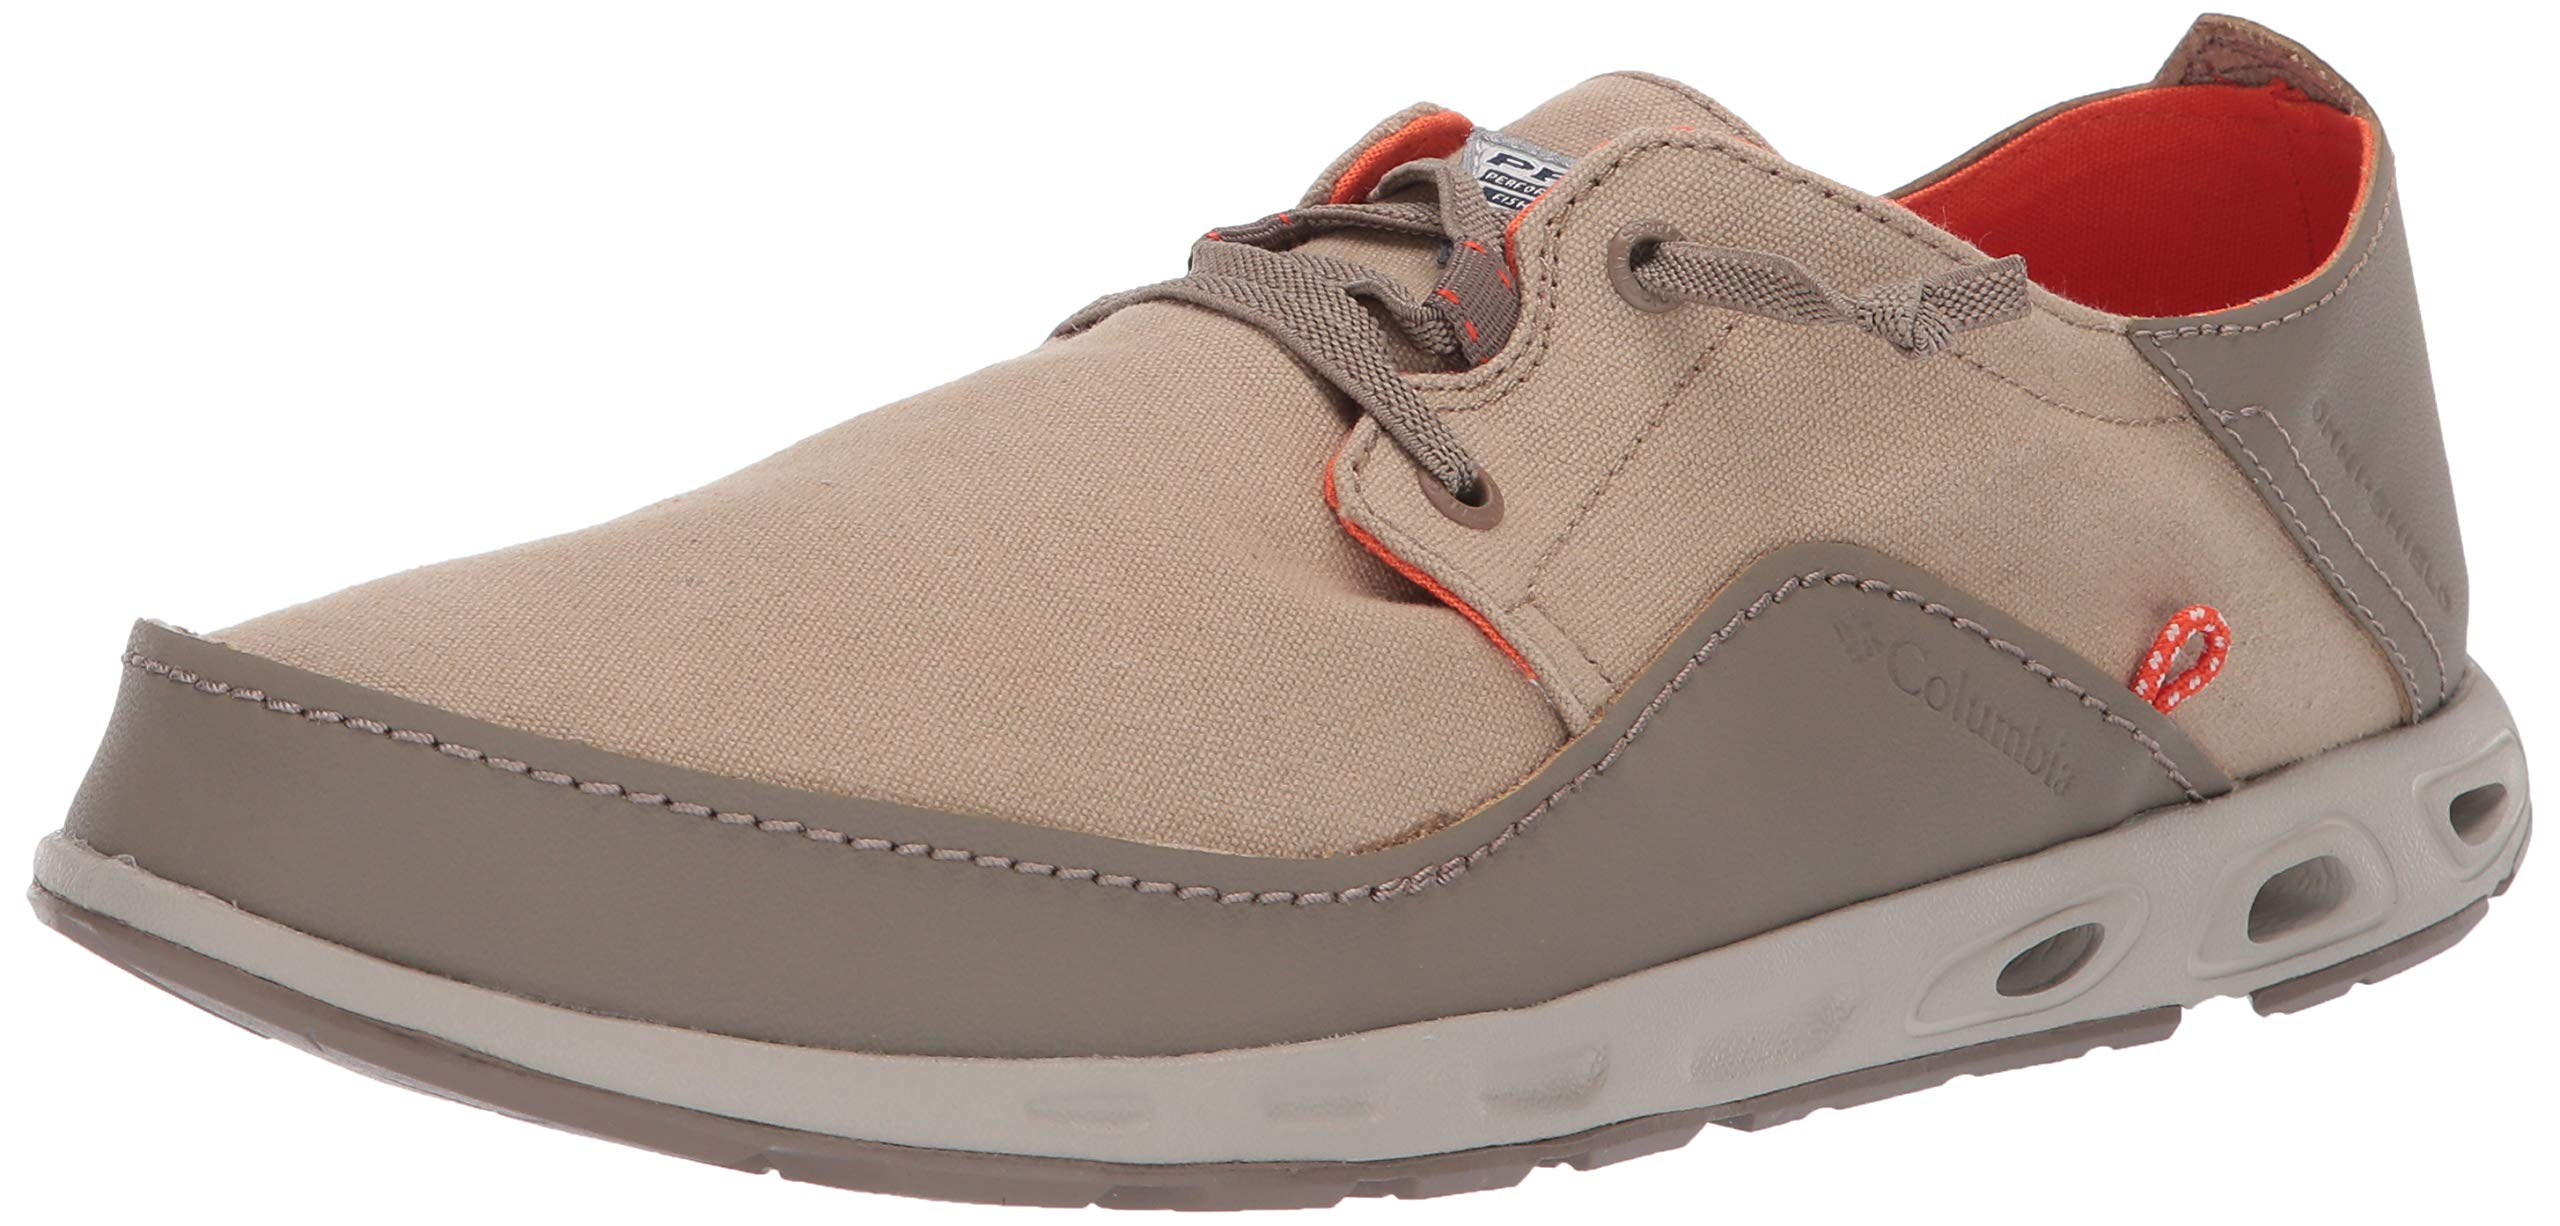 Columbia PFG Men's Bahama Vent Relaxed PFG Boat Shoe British Tan, Tangy Orange 7